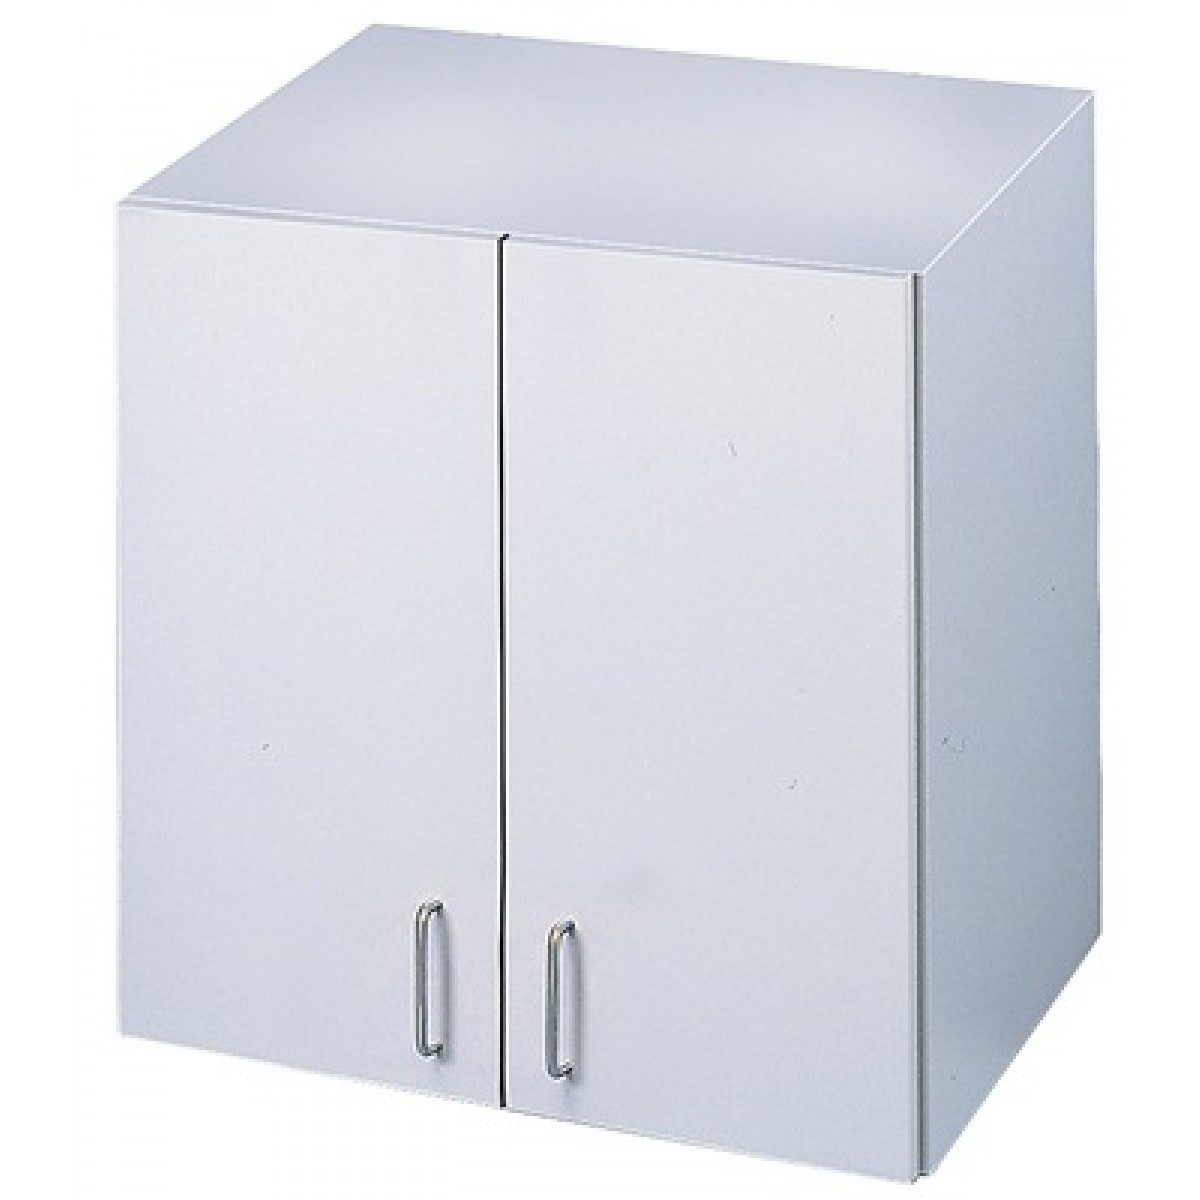 24*24 Hausmann W 24 24 24 Inch Two Door Wall Cabinet